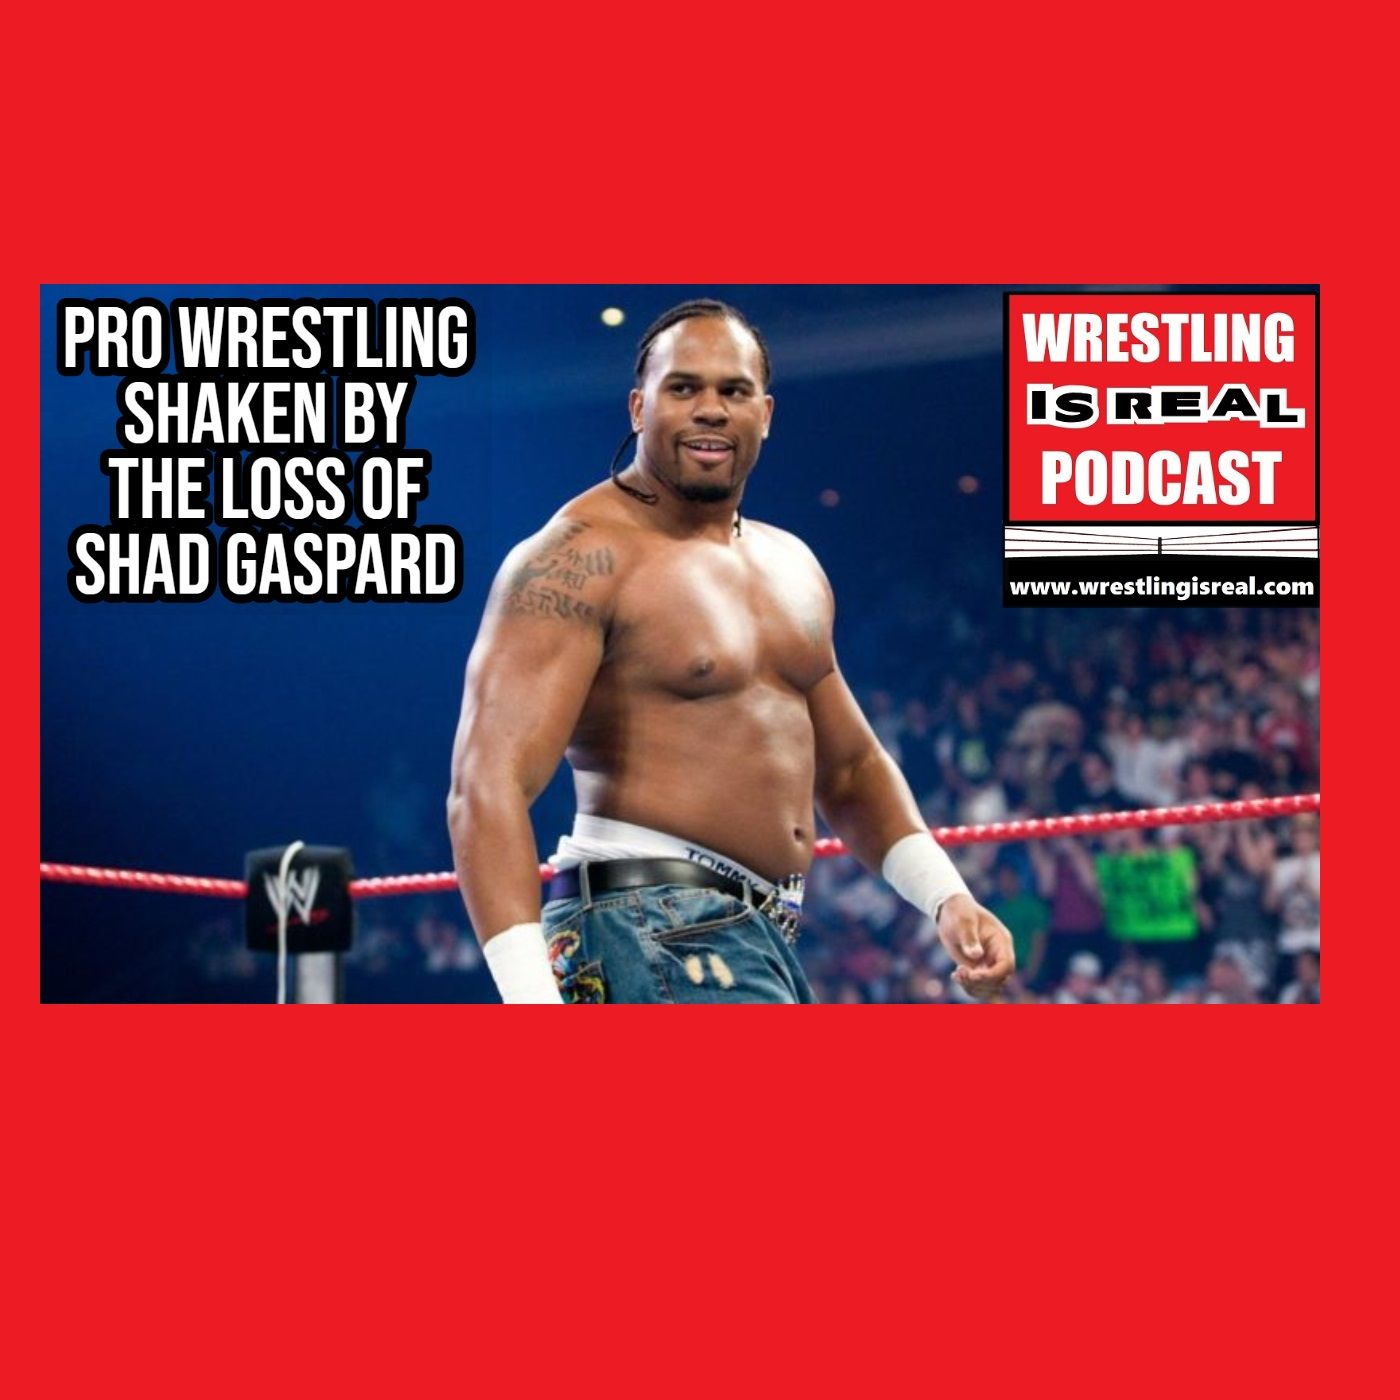 Pro Wrestling Shaken By The Loss of Shad Gaspard KOP052120-534